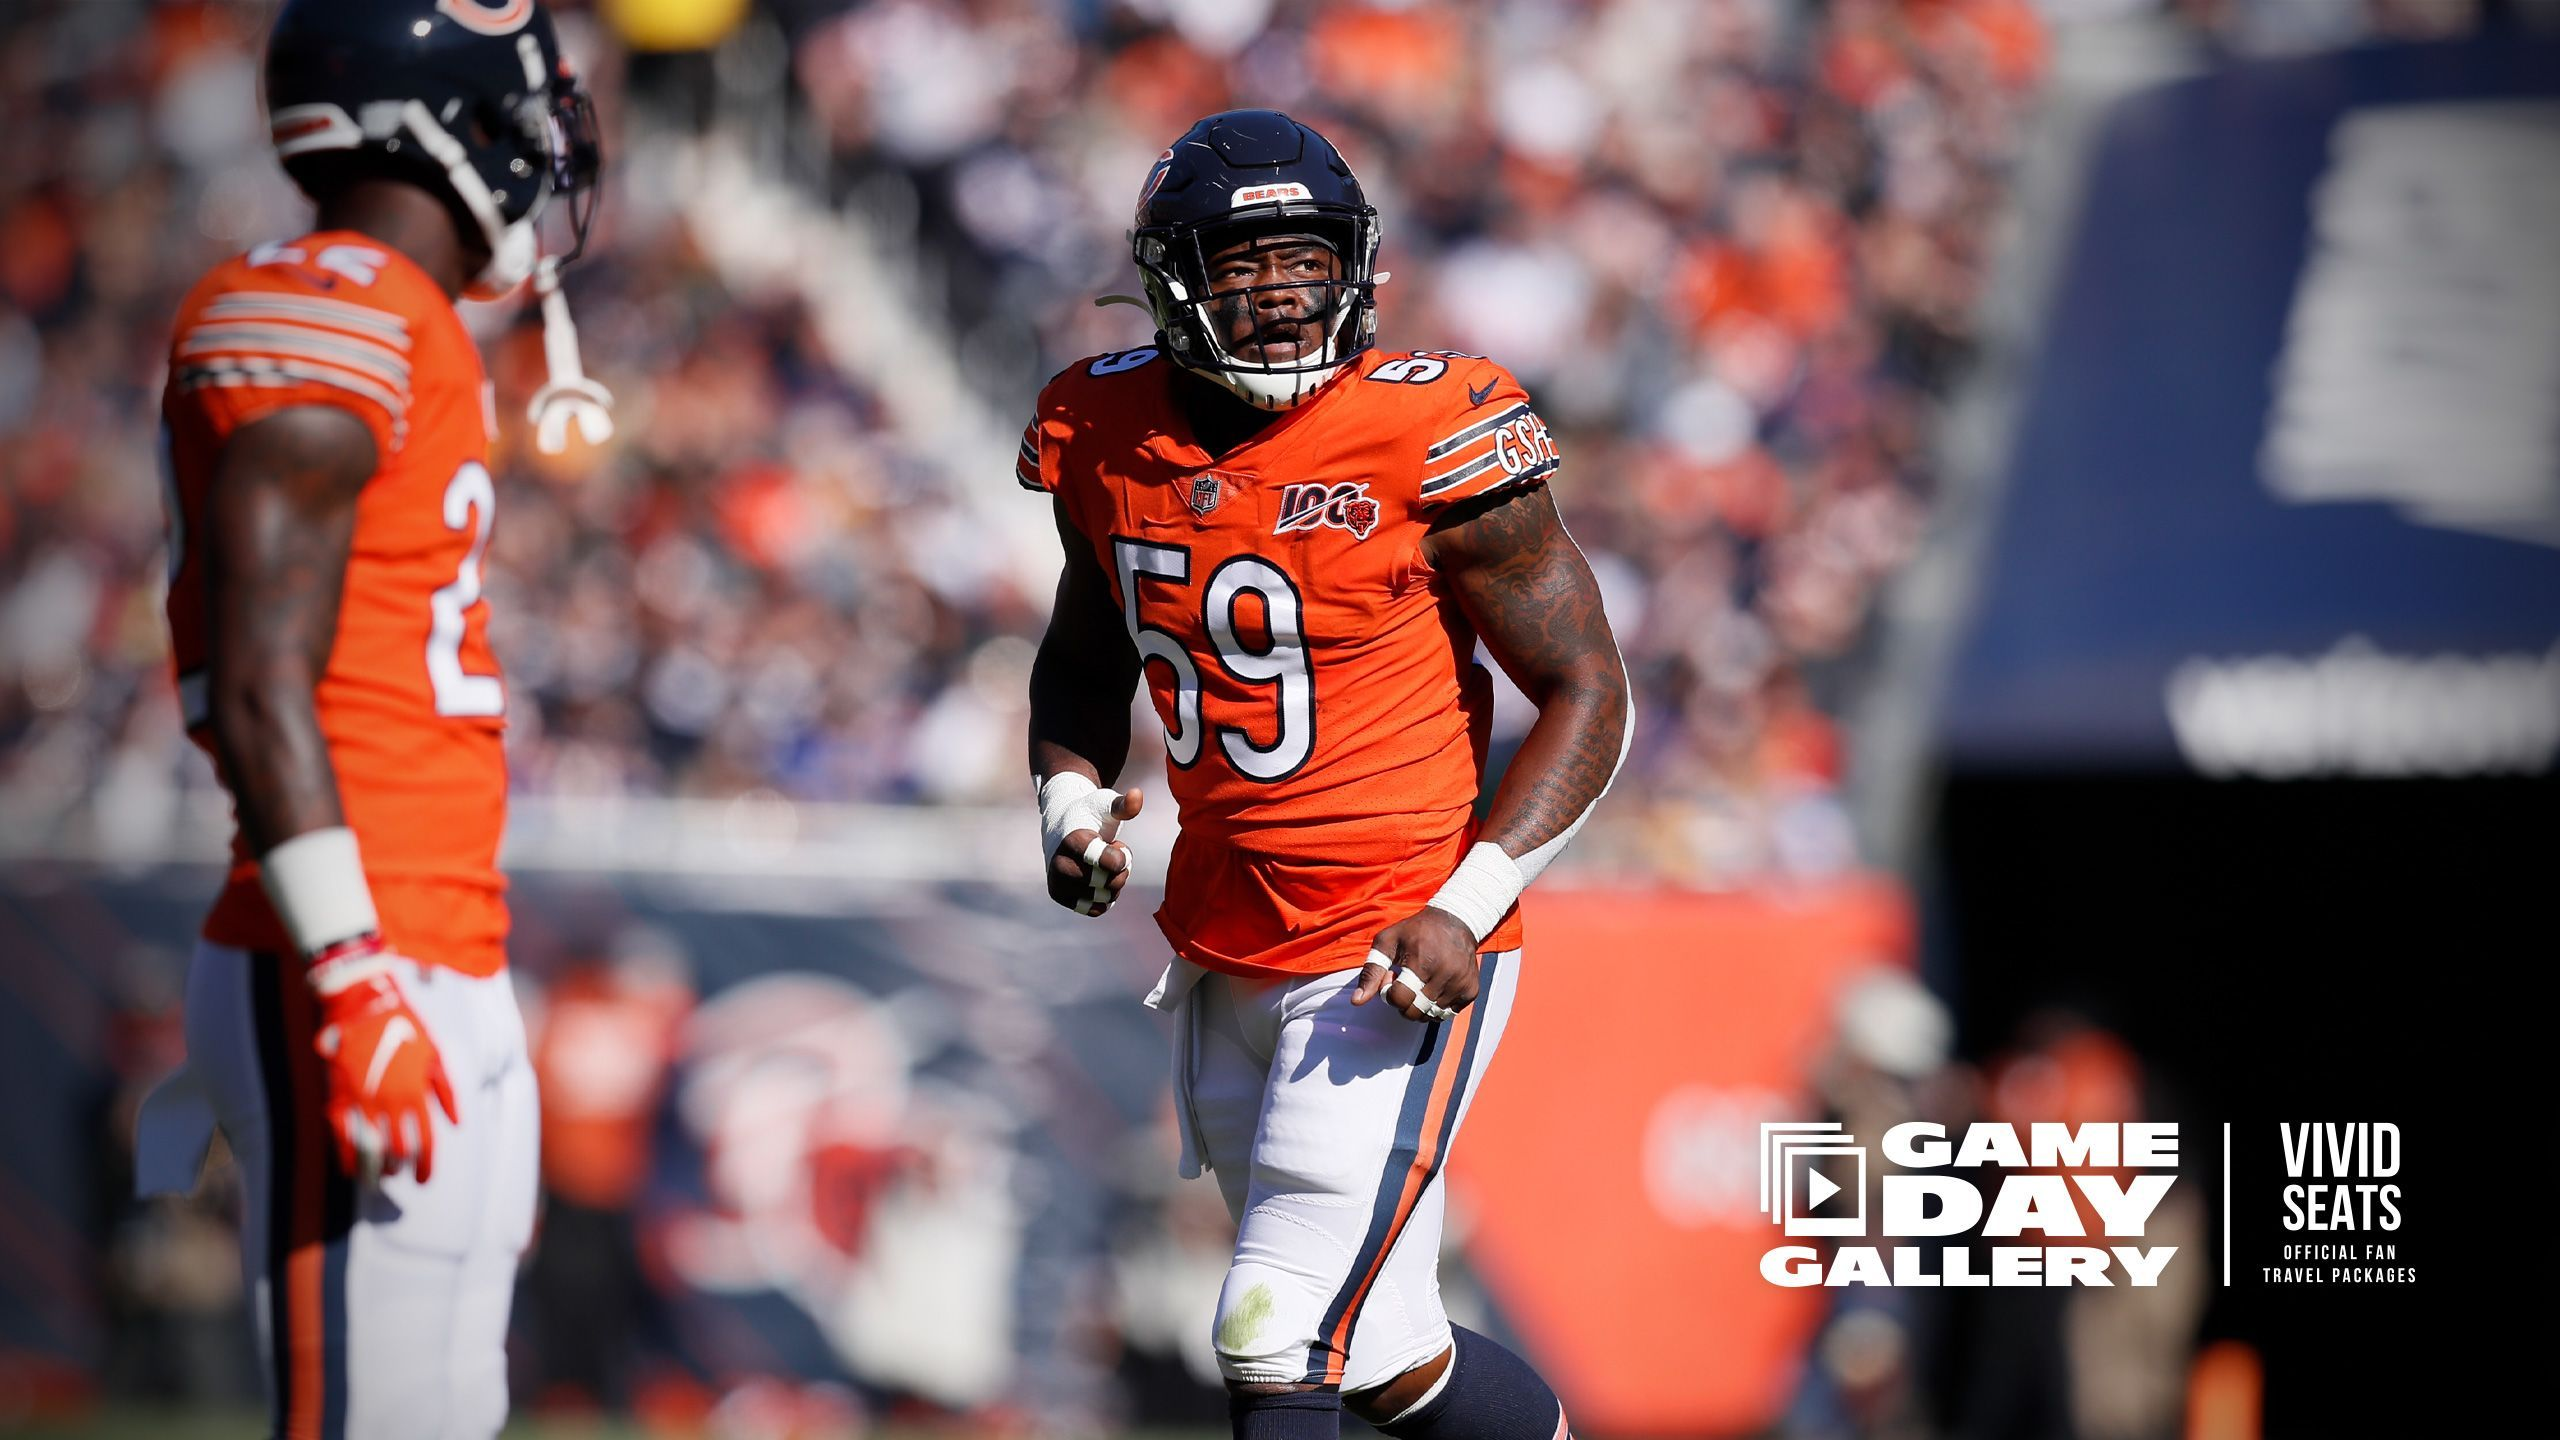 Gameday Gallery Chargers At Bears Chicago Bears Football Gameday Bears Football